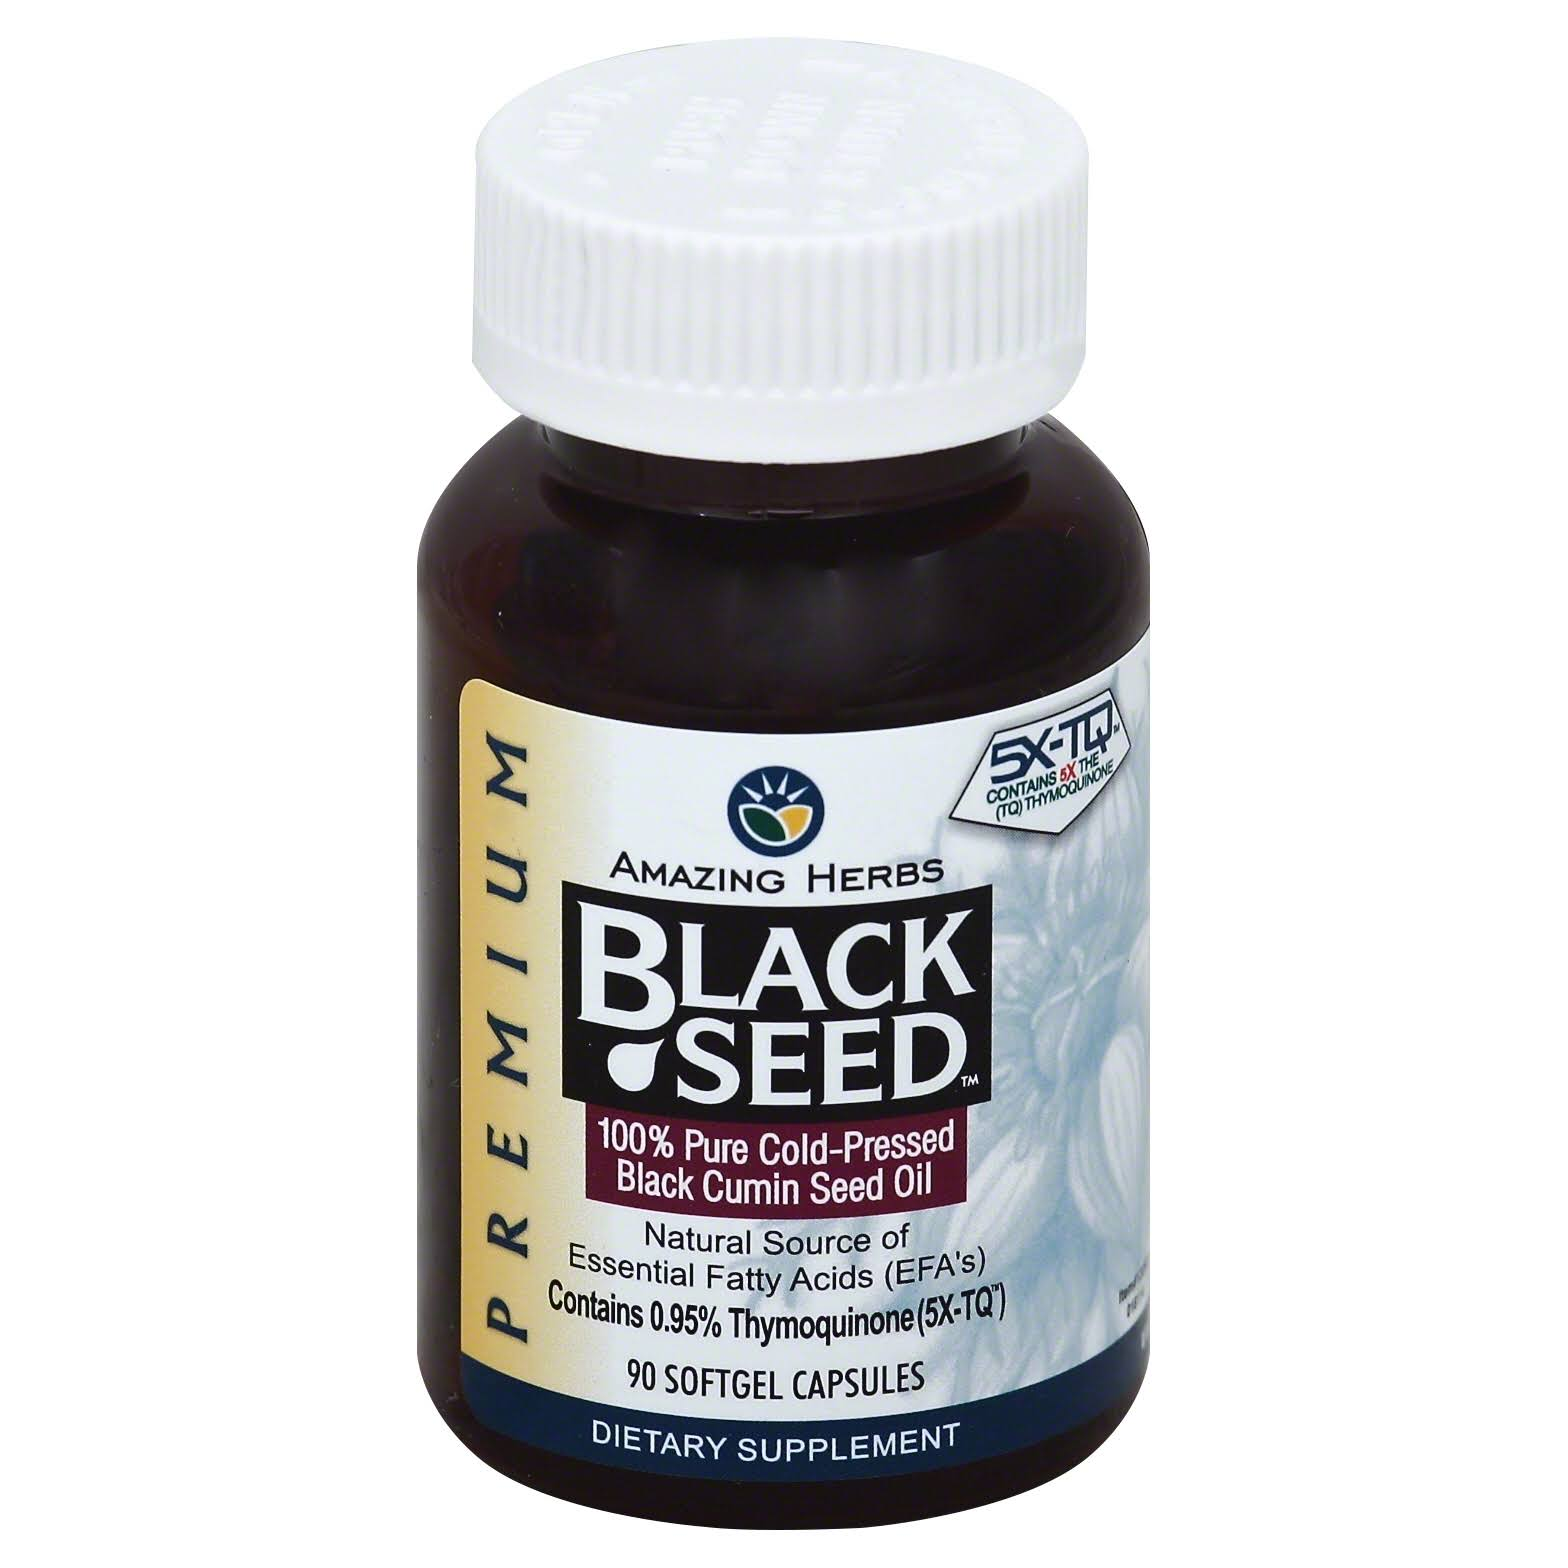 Amazing Herbs Cold-Pressed Black Seed Oil Dietary Supplement - 90 Capsules